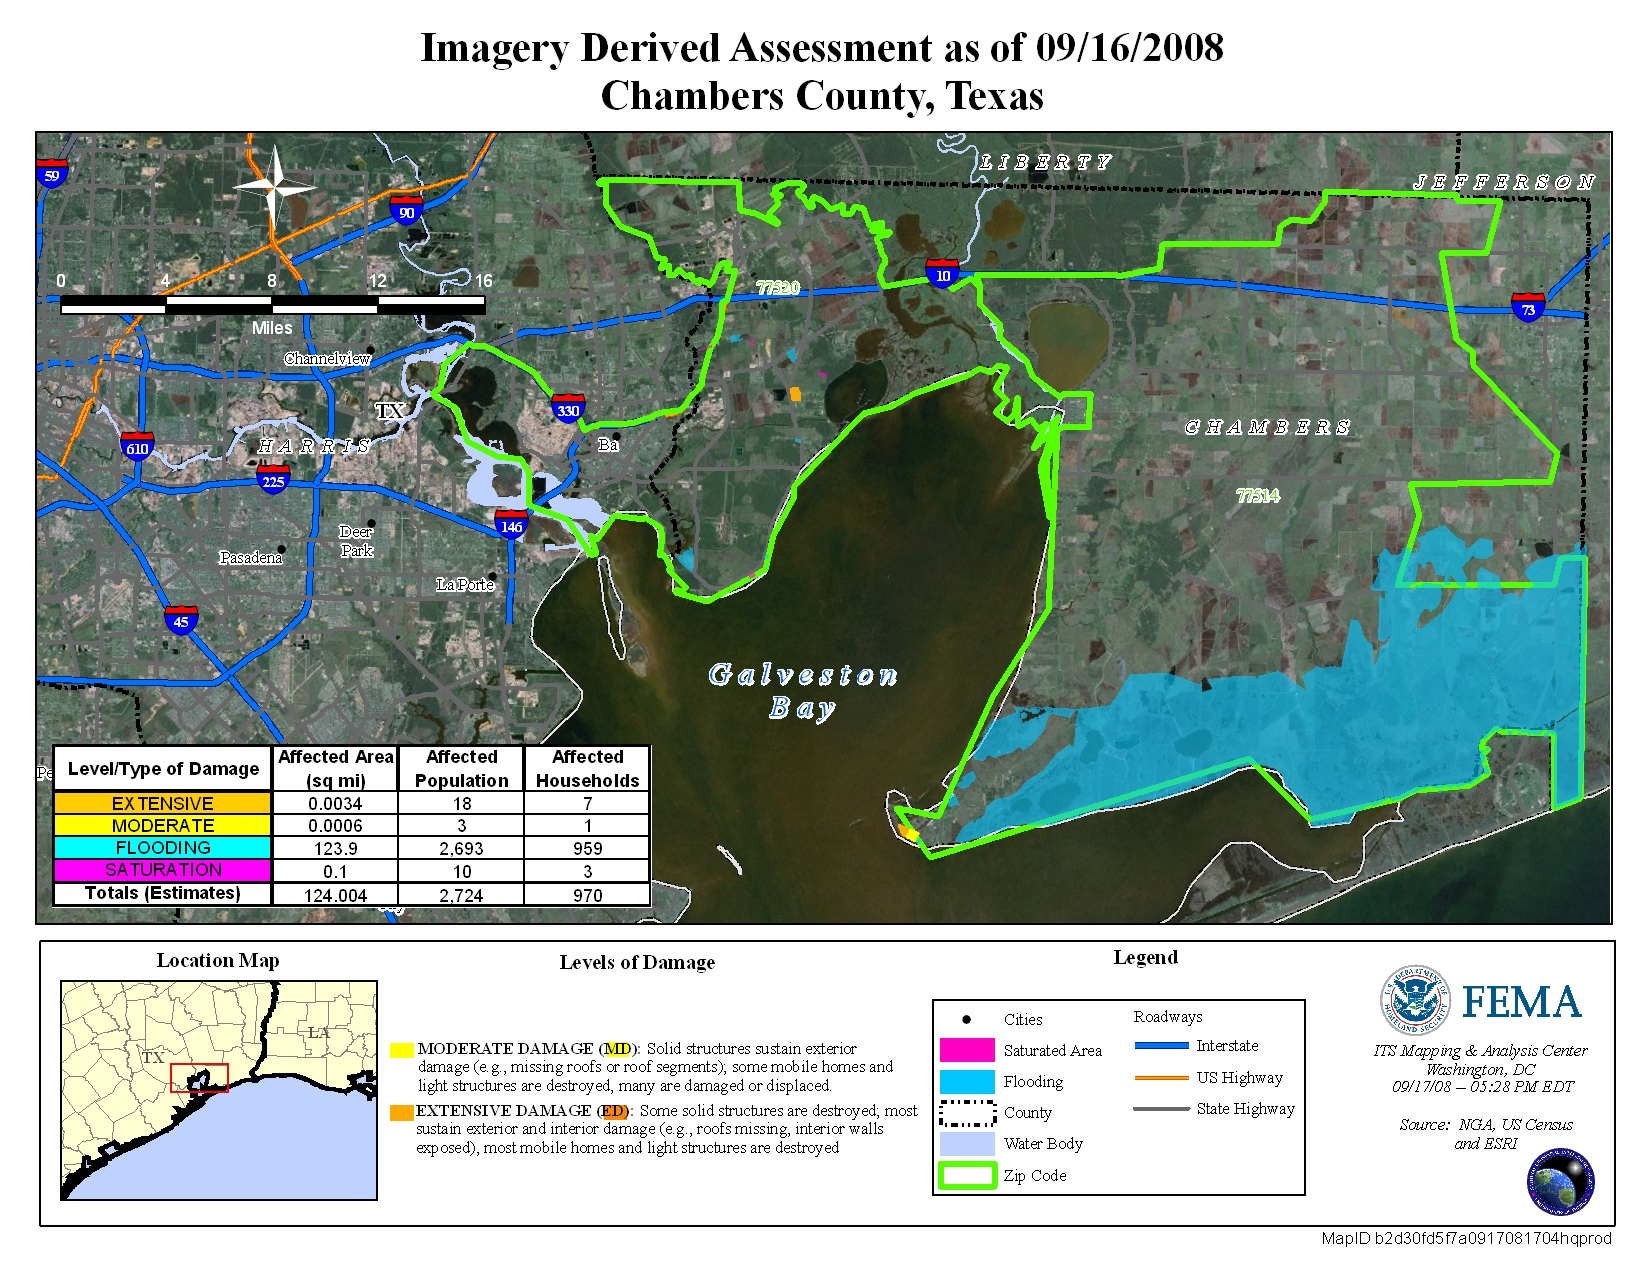 Disaster Relief Operation Map Archives - Chambers County Texas Flood Zone Map